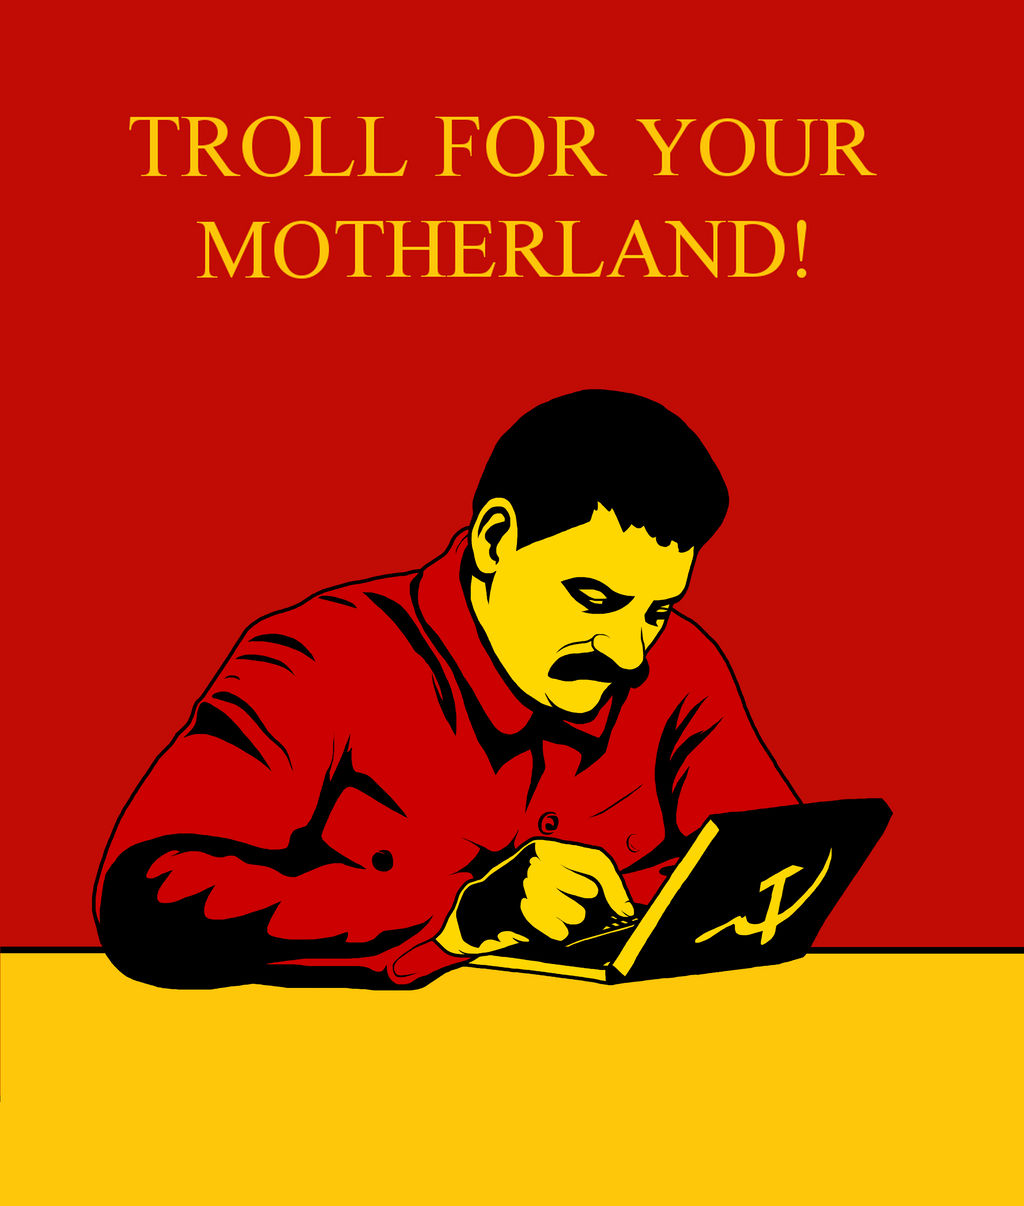 TROLL FOR YOUR MOTHERLAND! by FUK-ME